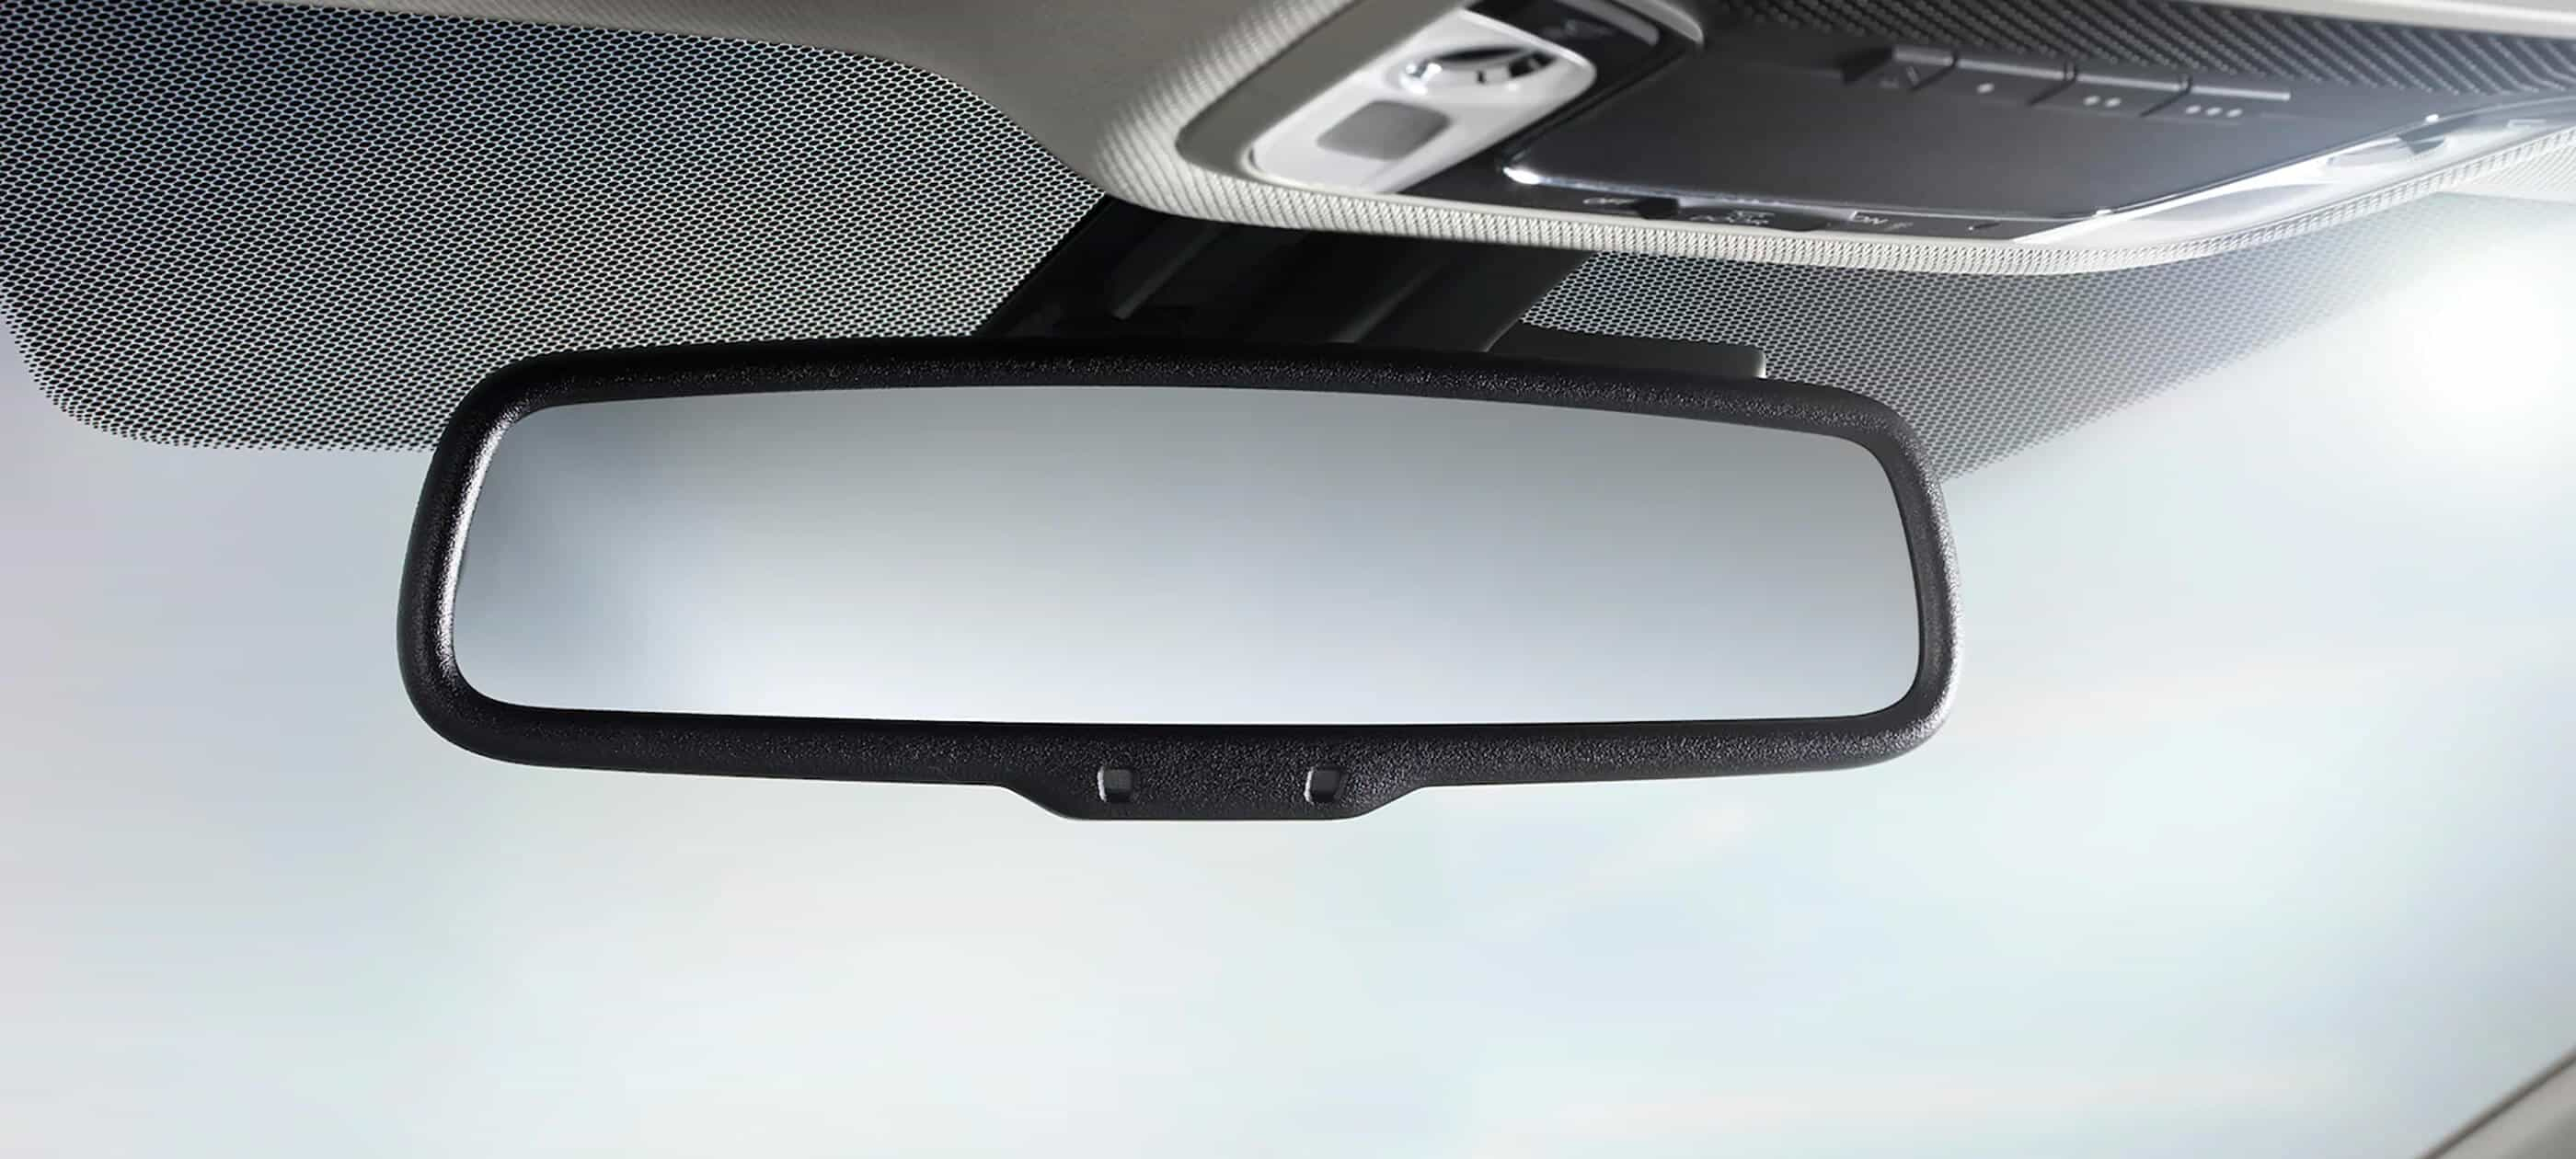 Automatic-Dimming Rearview Mirror